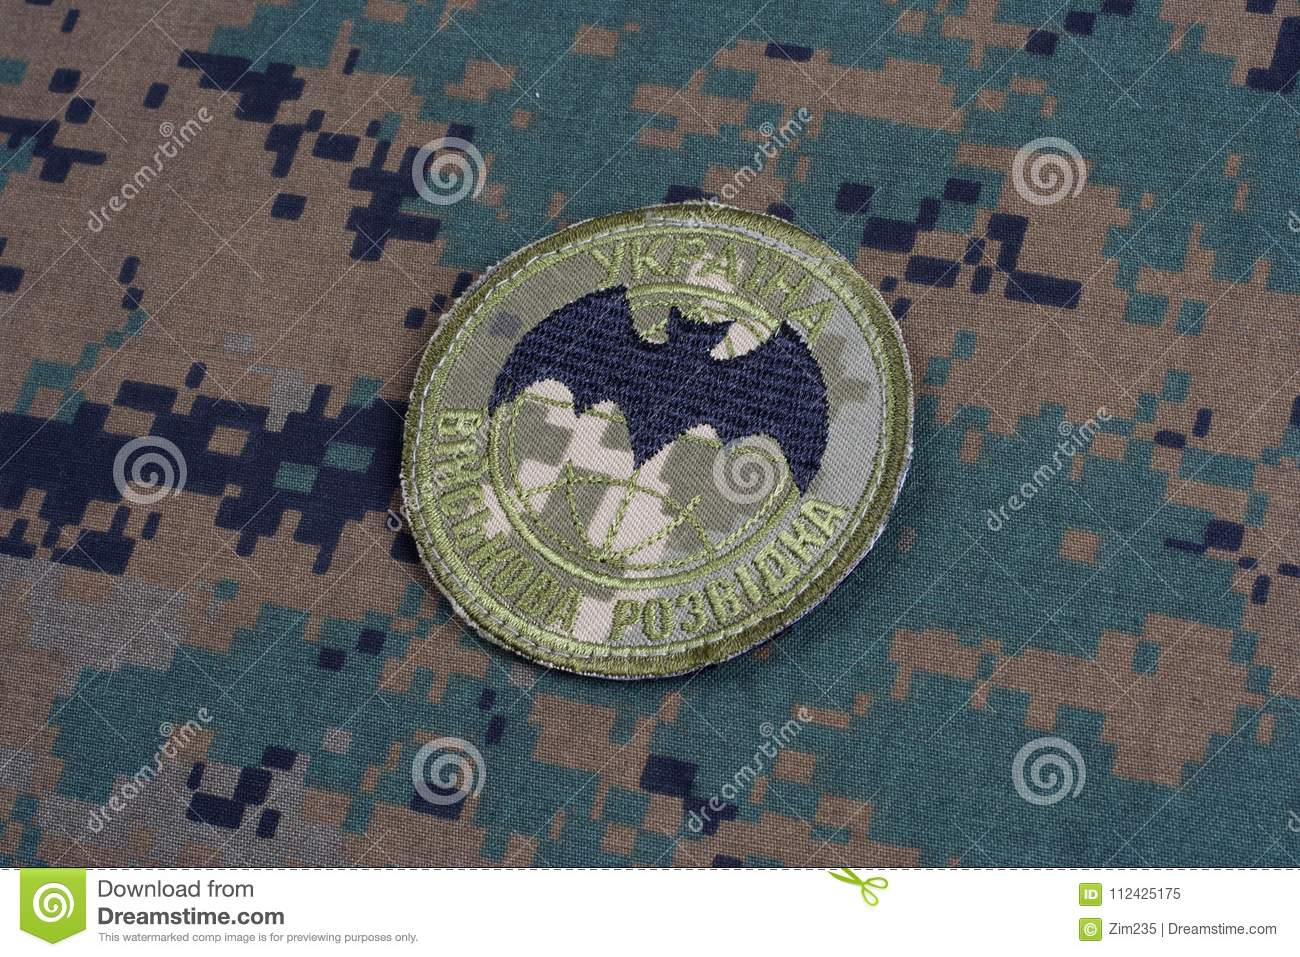 KYIV, UKRAINE - July, 16, 2015. Ukraine`s military intelligence uniform badge